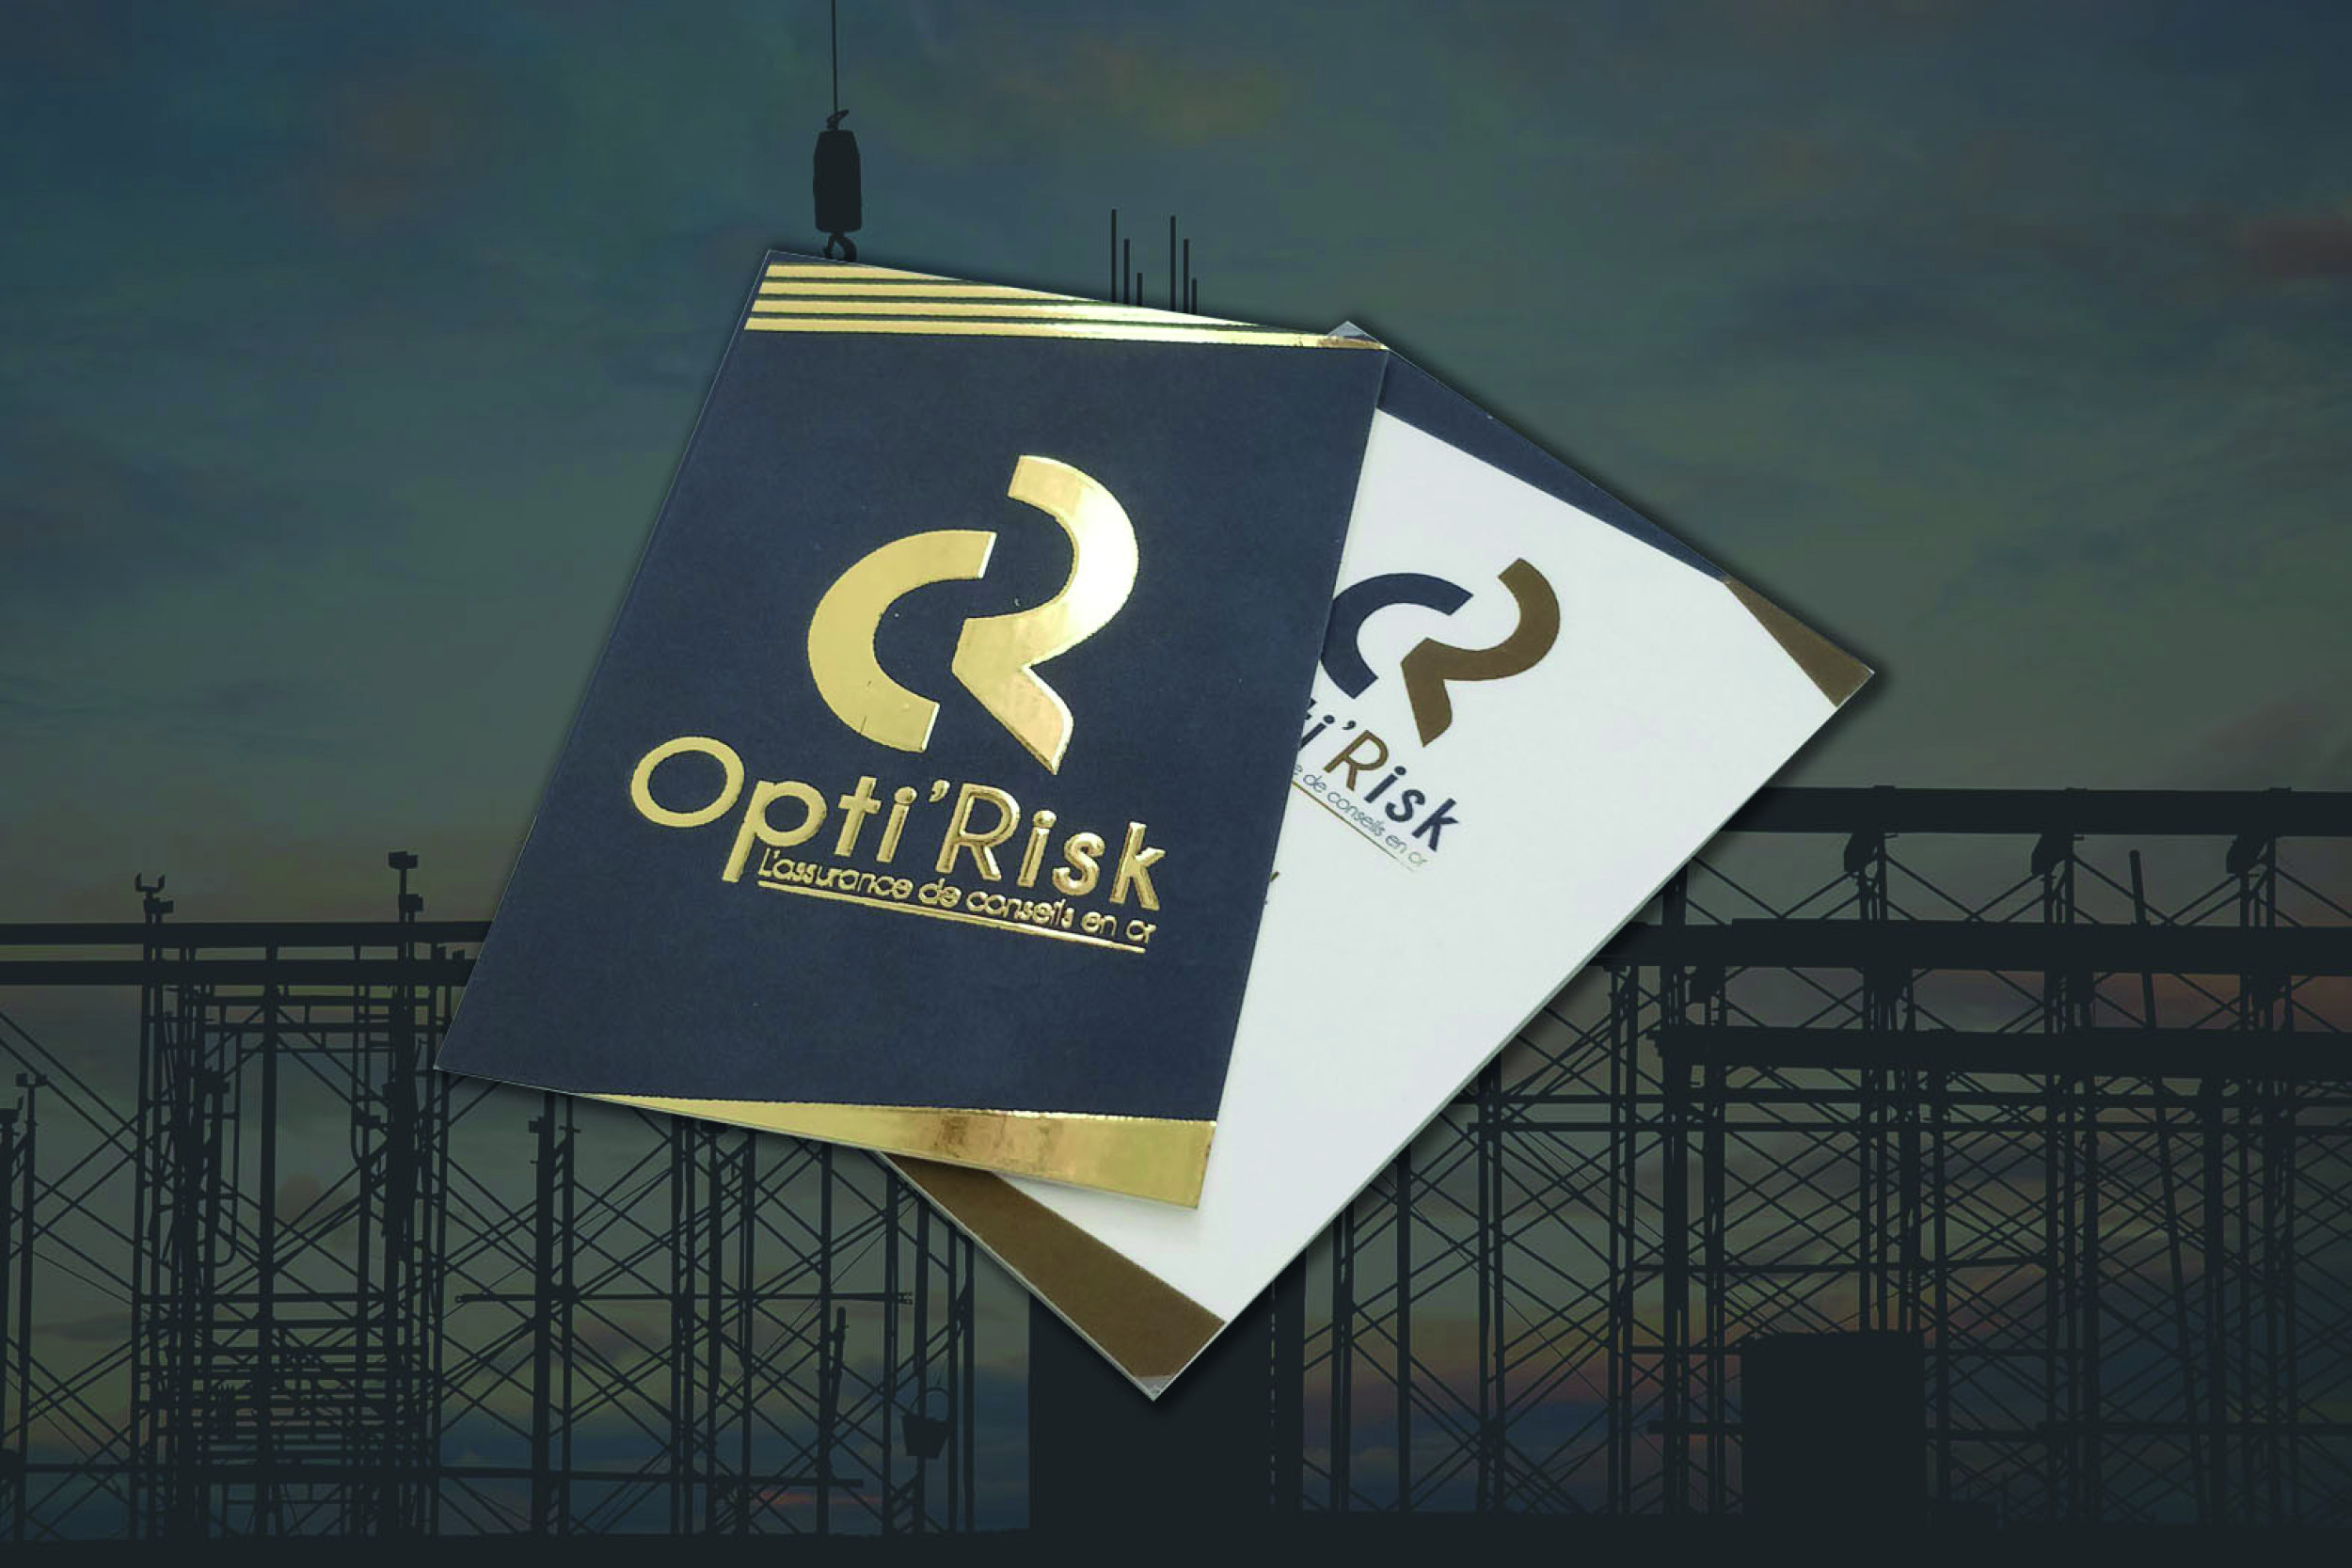 Opti'Risk – Finition feuille d'or